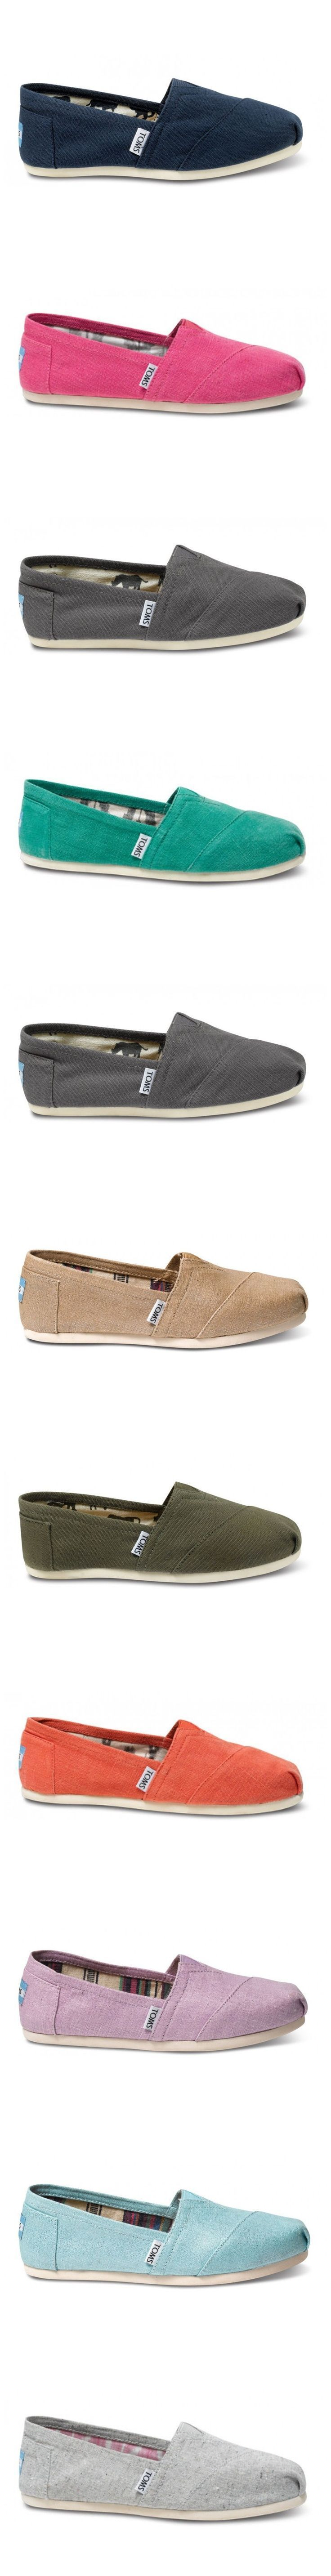 Toms shoes I liked them, I would definitely wear them to work or shopping!!